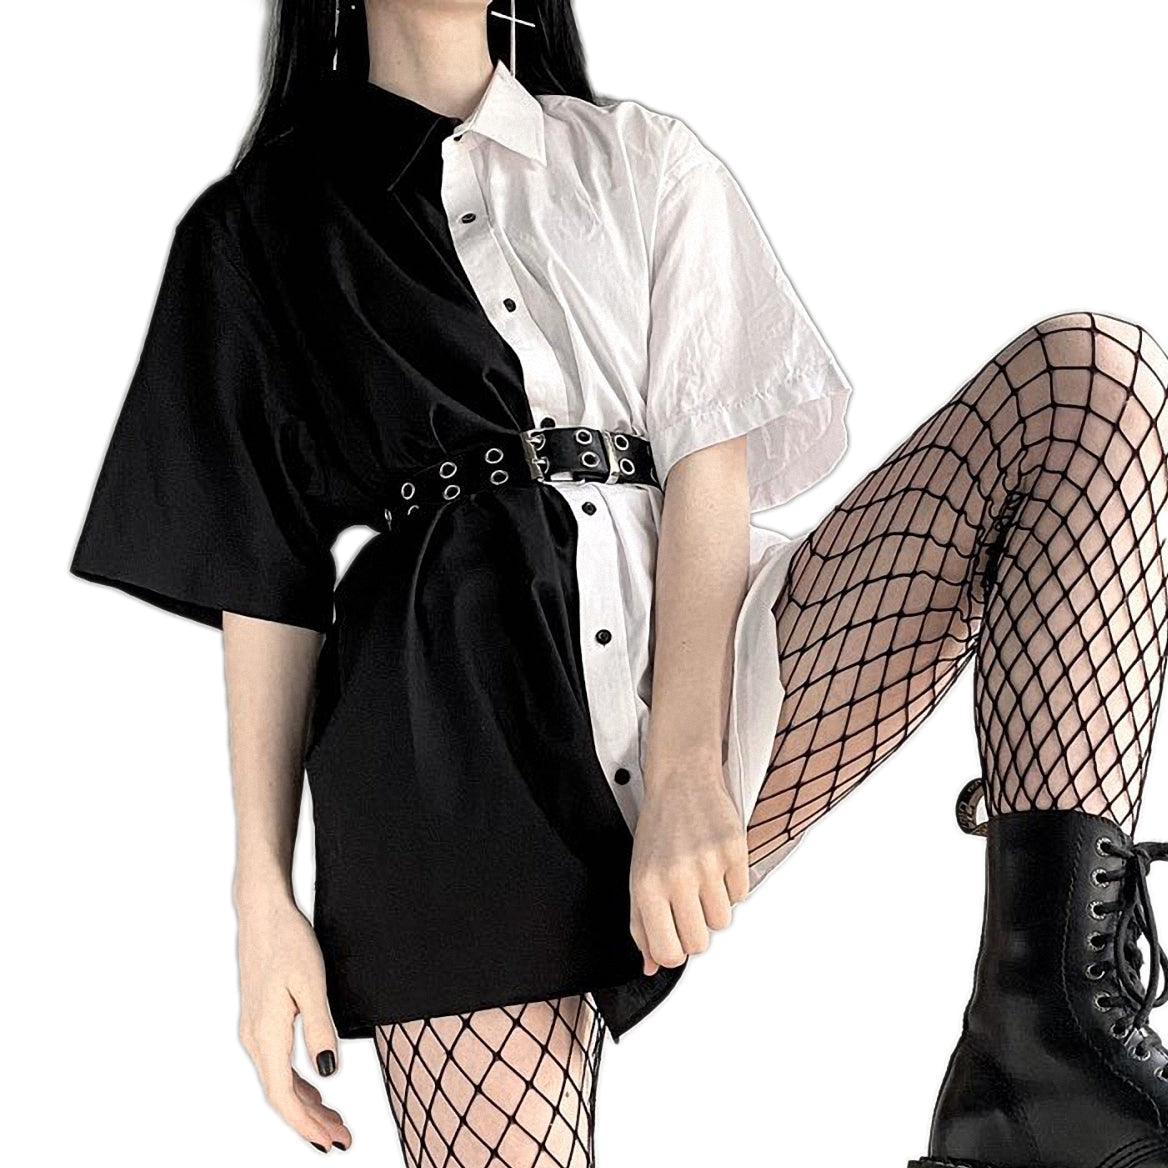 Loose Gothic Dress / Alternative Fashion Goth Women Dress with Turn-Down Collar / 90s Party Clothes - HARD'N'HEAVY